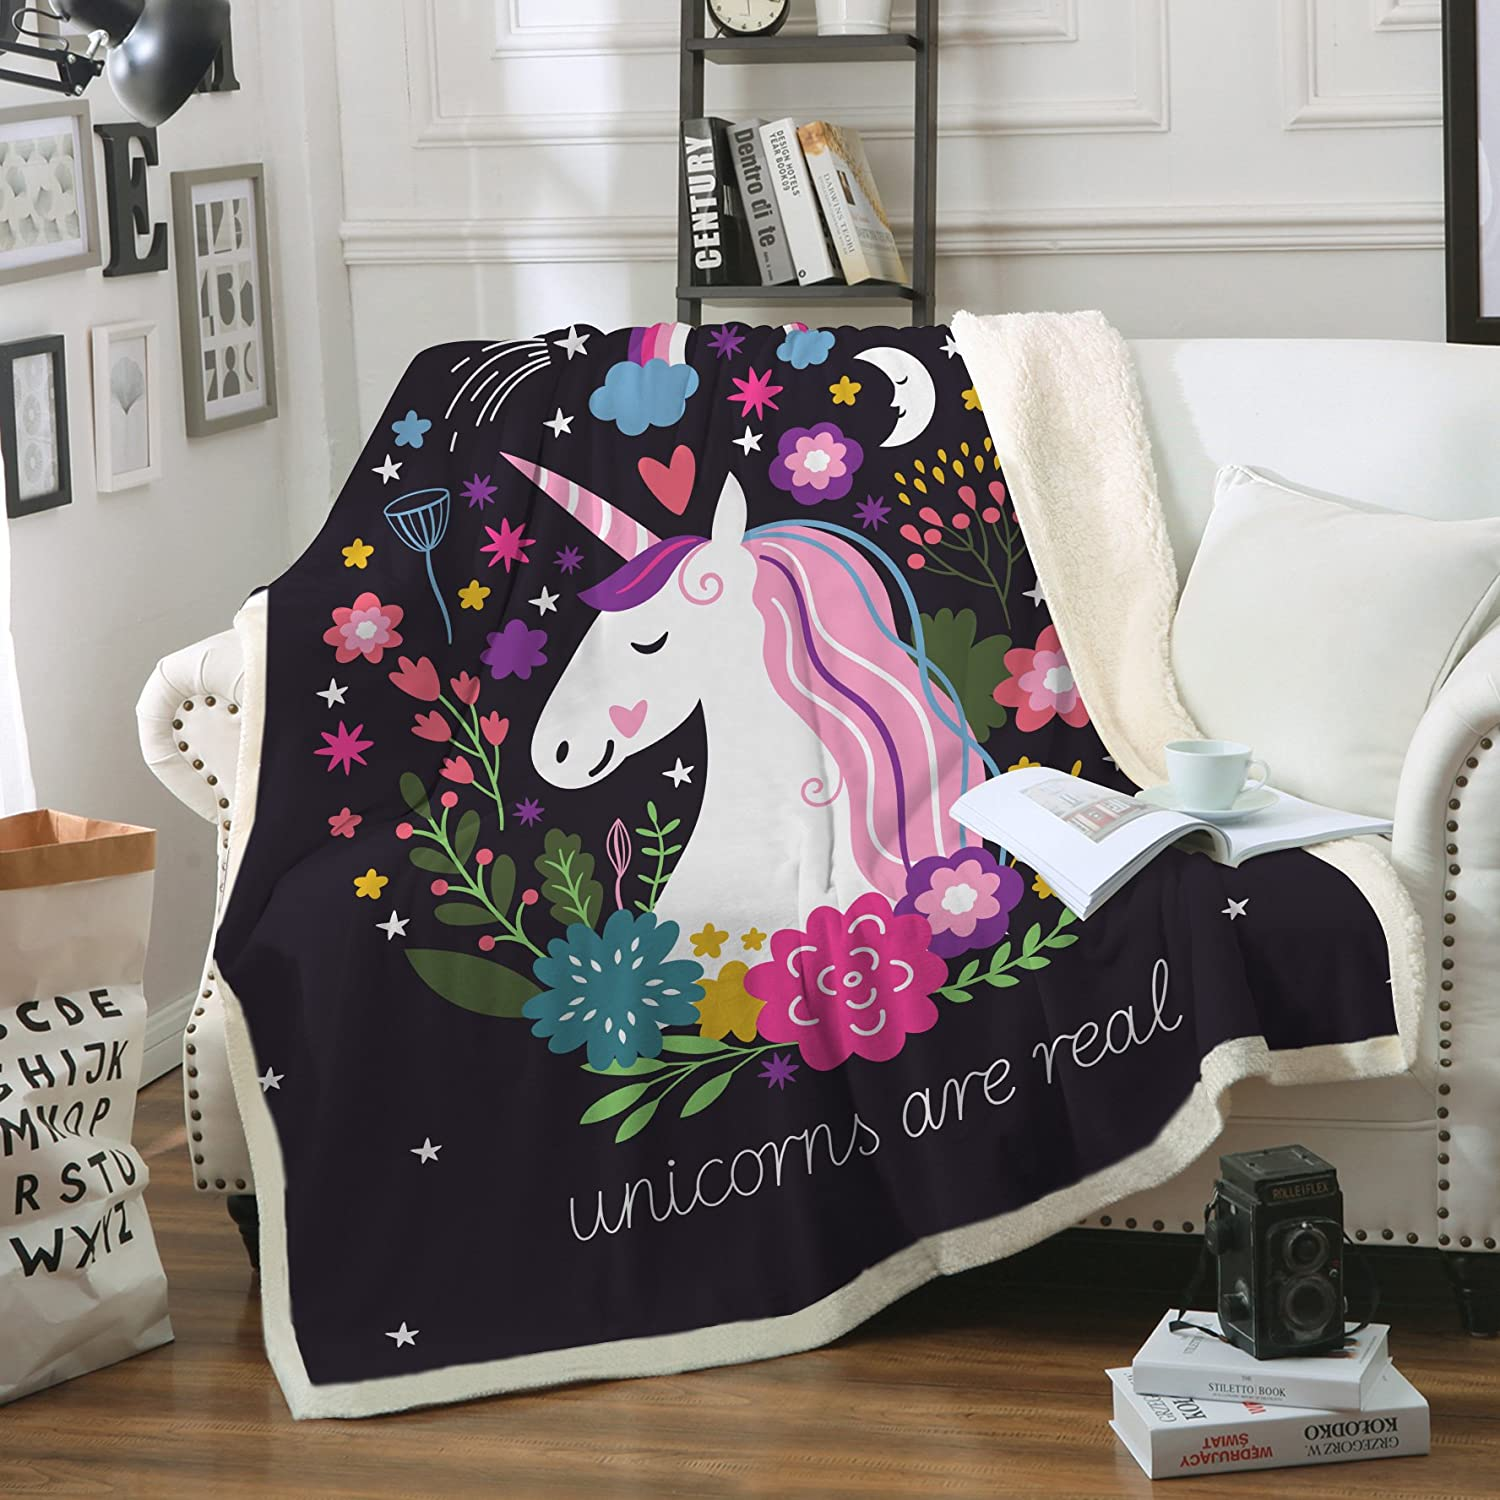 Sleepwish Cute Unicorn Blanket Girls Cartoon Unicorn with Flowers Fleece Blanket Black Sherpa Blanket for Kids Adults (Twin 60